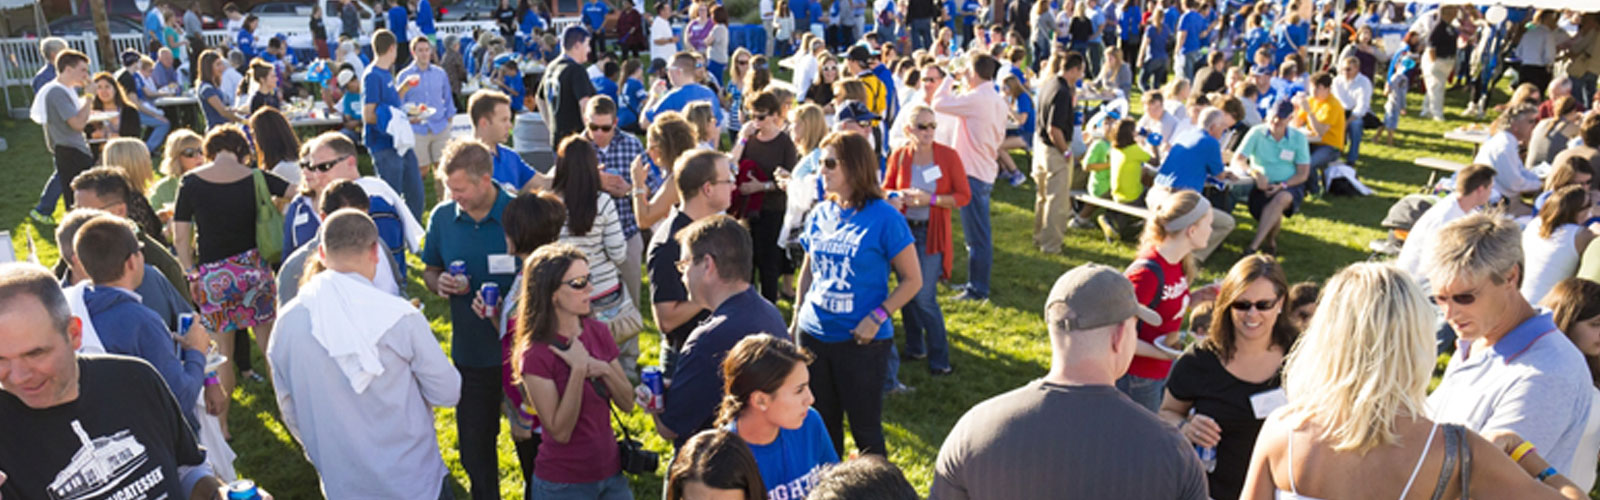 large amount of people at an event at Creighton University